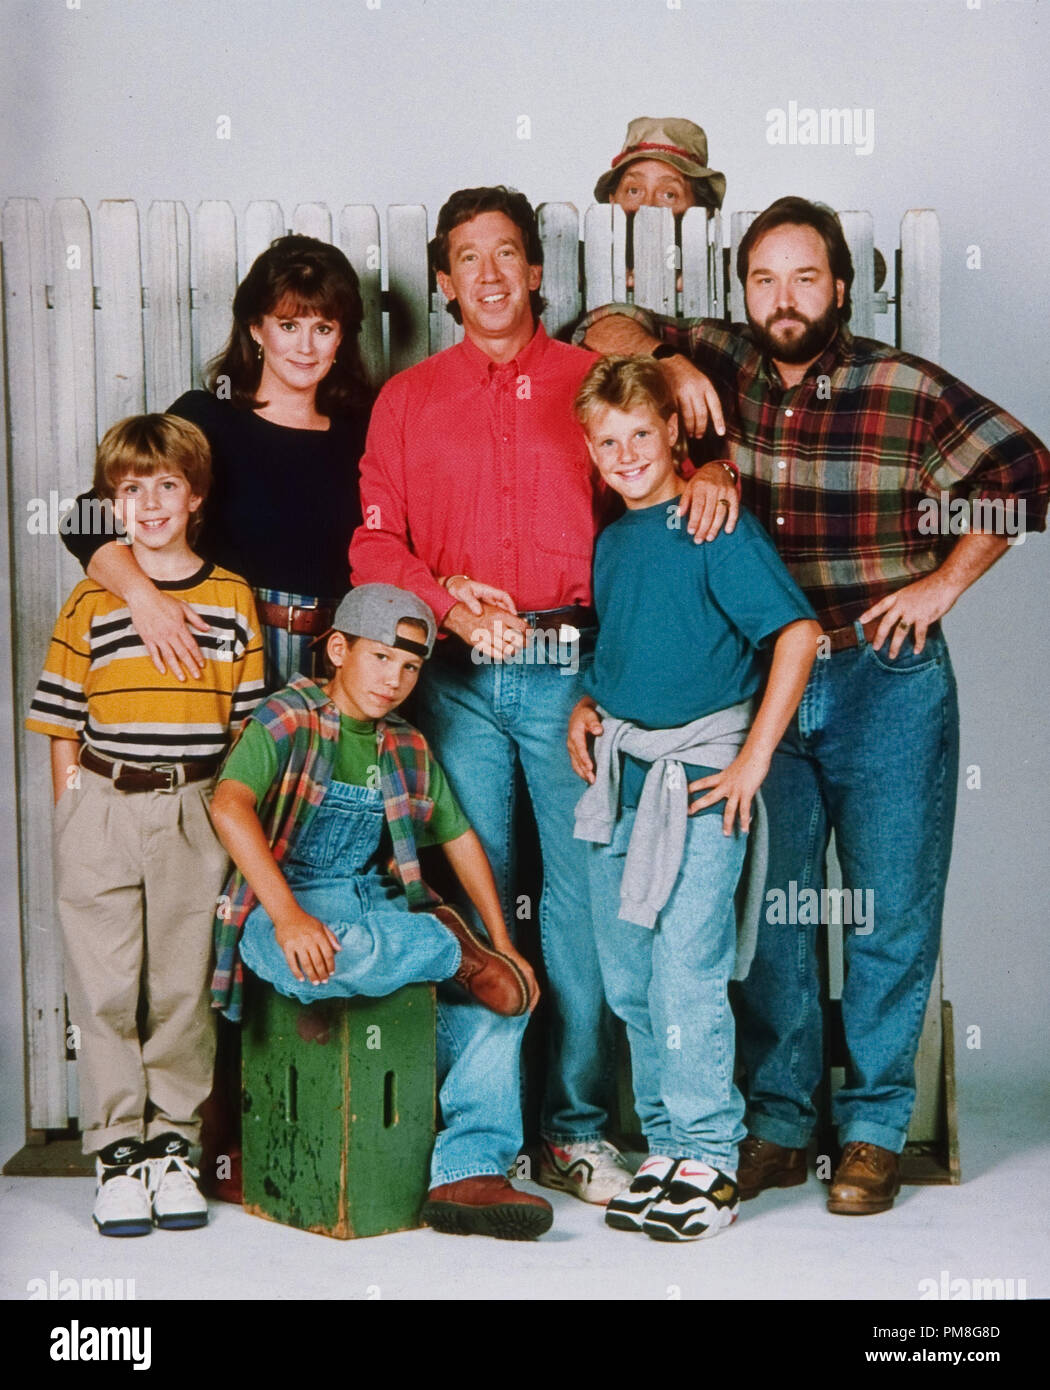 Home Improvement Tim Allen High Resolution Stock Photography And Images Alamy